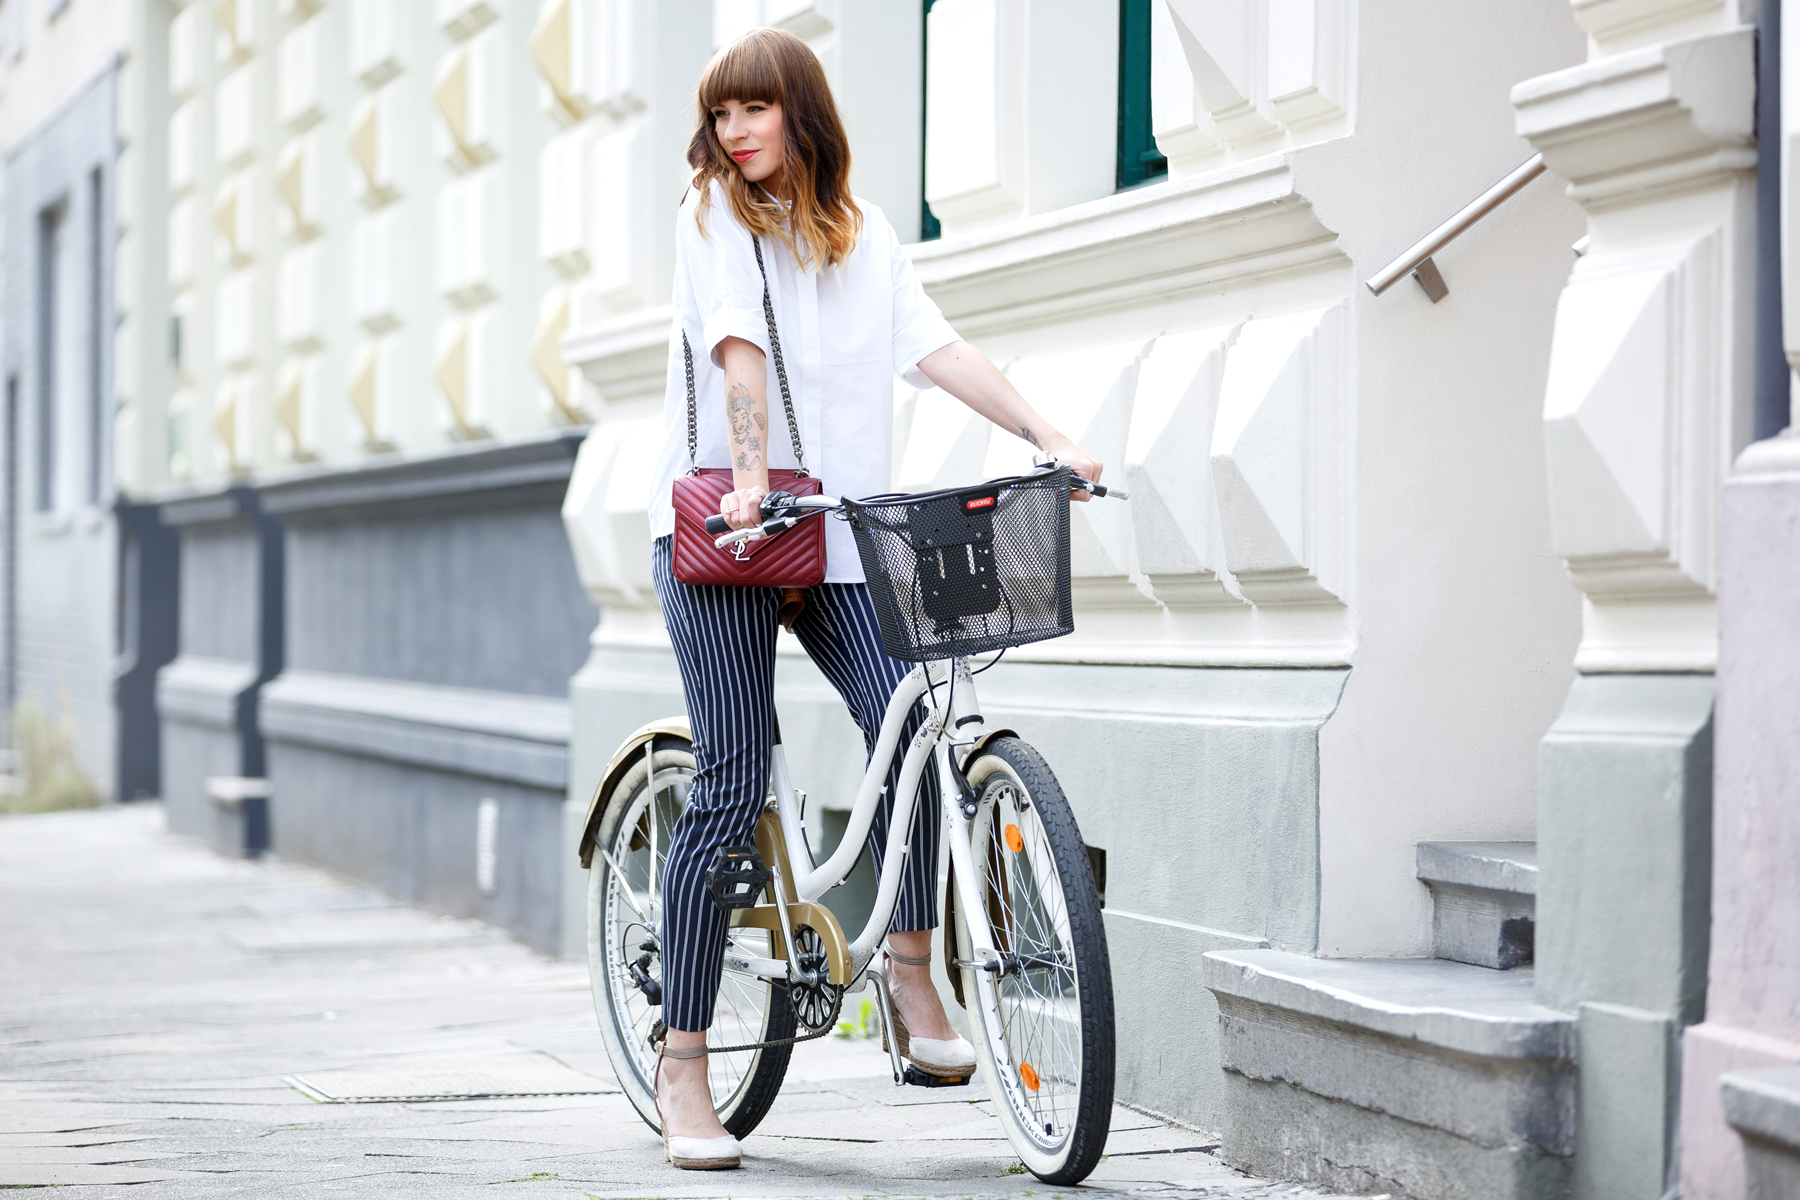 bike bicycle reserved georgia may jagger maritime ysl monogram bag red blue white outfit ootd look lookbook brunette bangs french parisienne parisian paris düsseldorf cute girly styling fashionblogger ricarda schernus cats & dogs blog 4